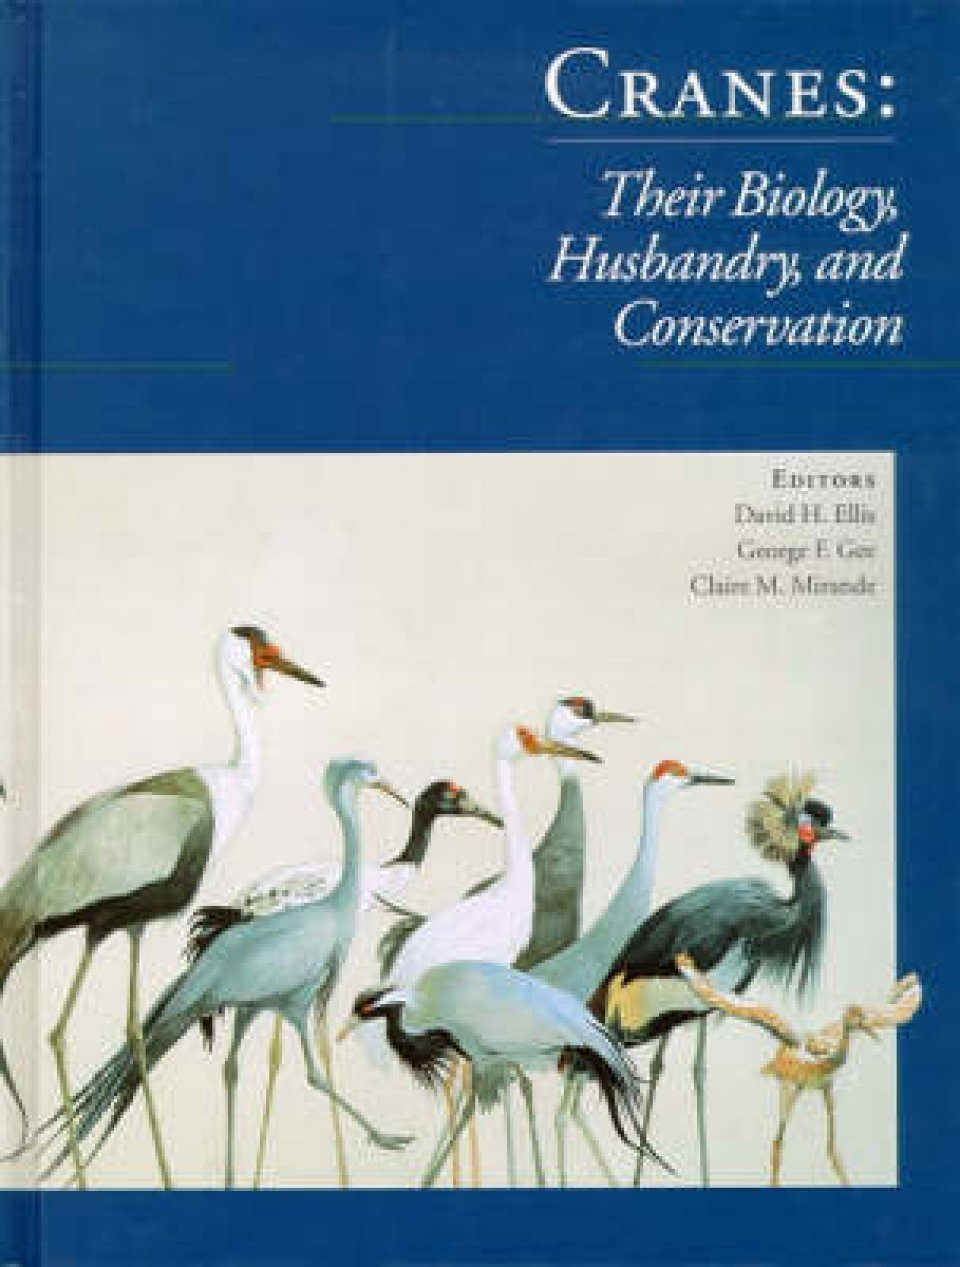 Cranes: Their Biology, Husbandry and Conservation